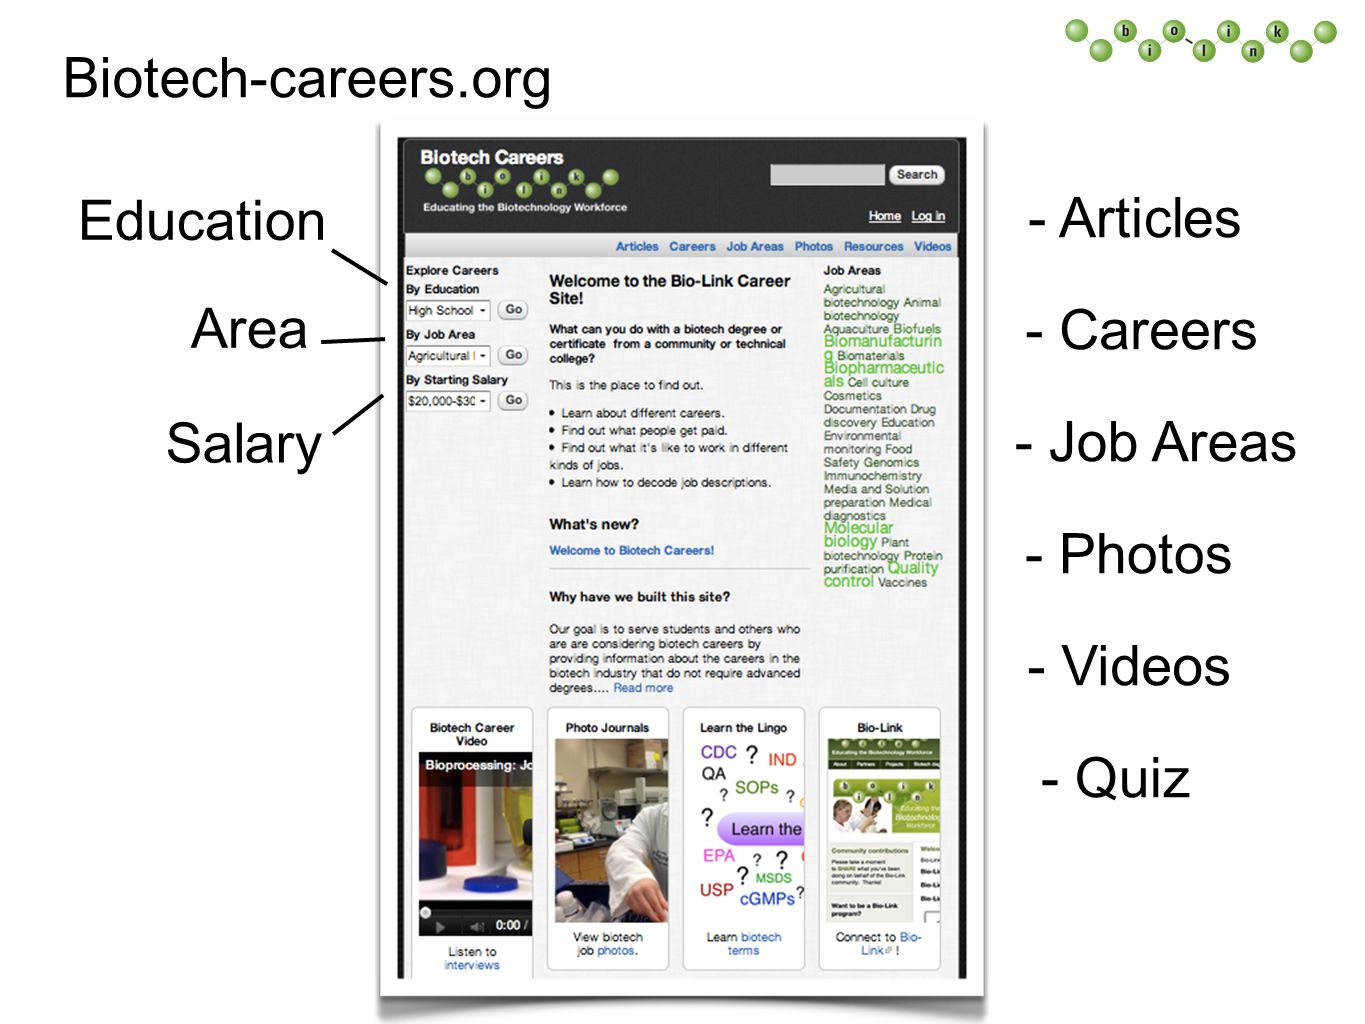 Biotech-careers.org Area Education Salary - Articles - Careers - Job Areas - Photos - Videos - Quiz